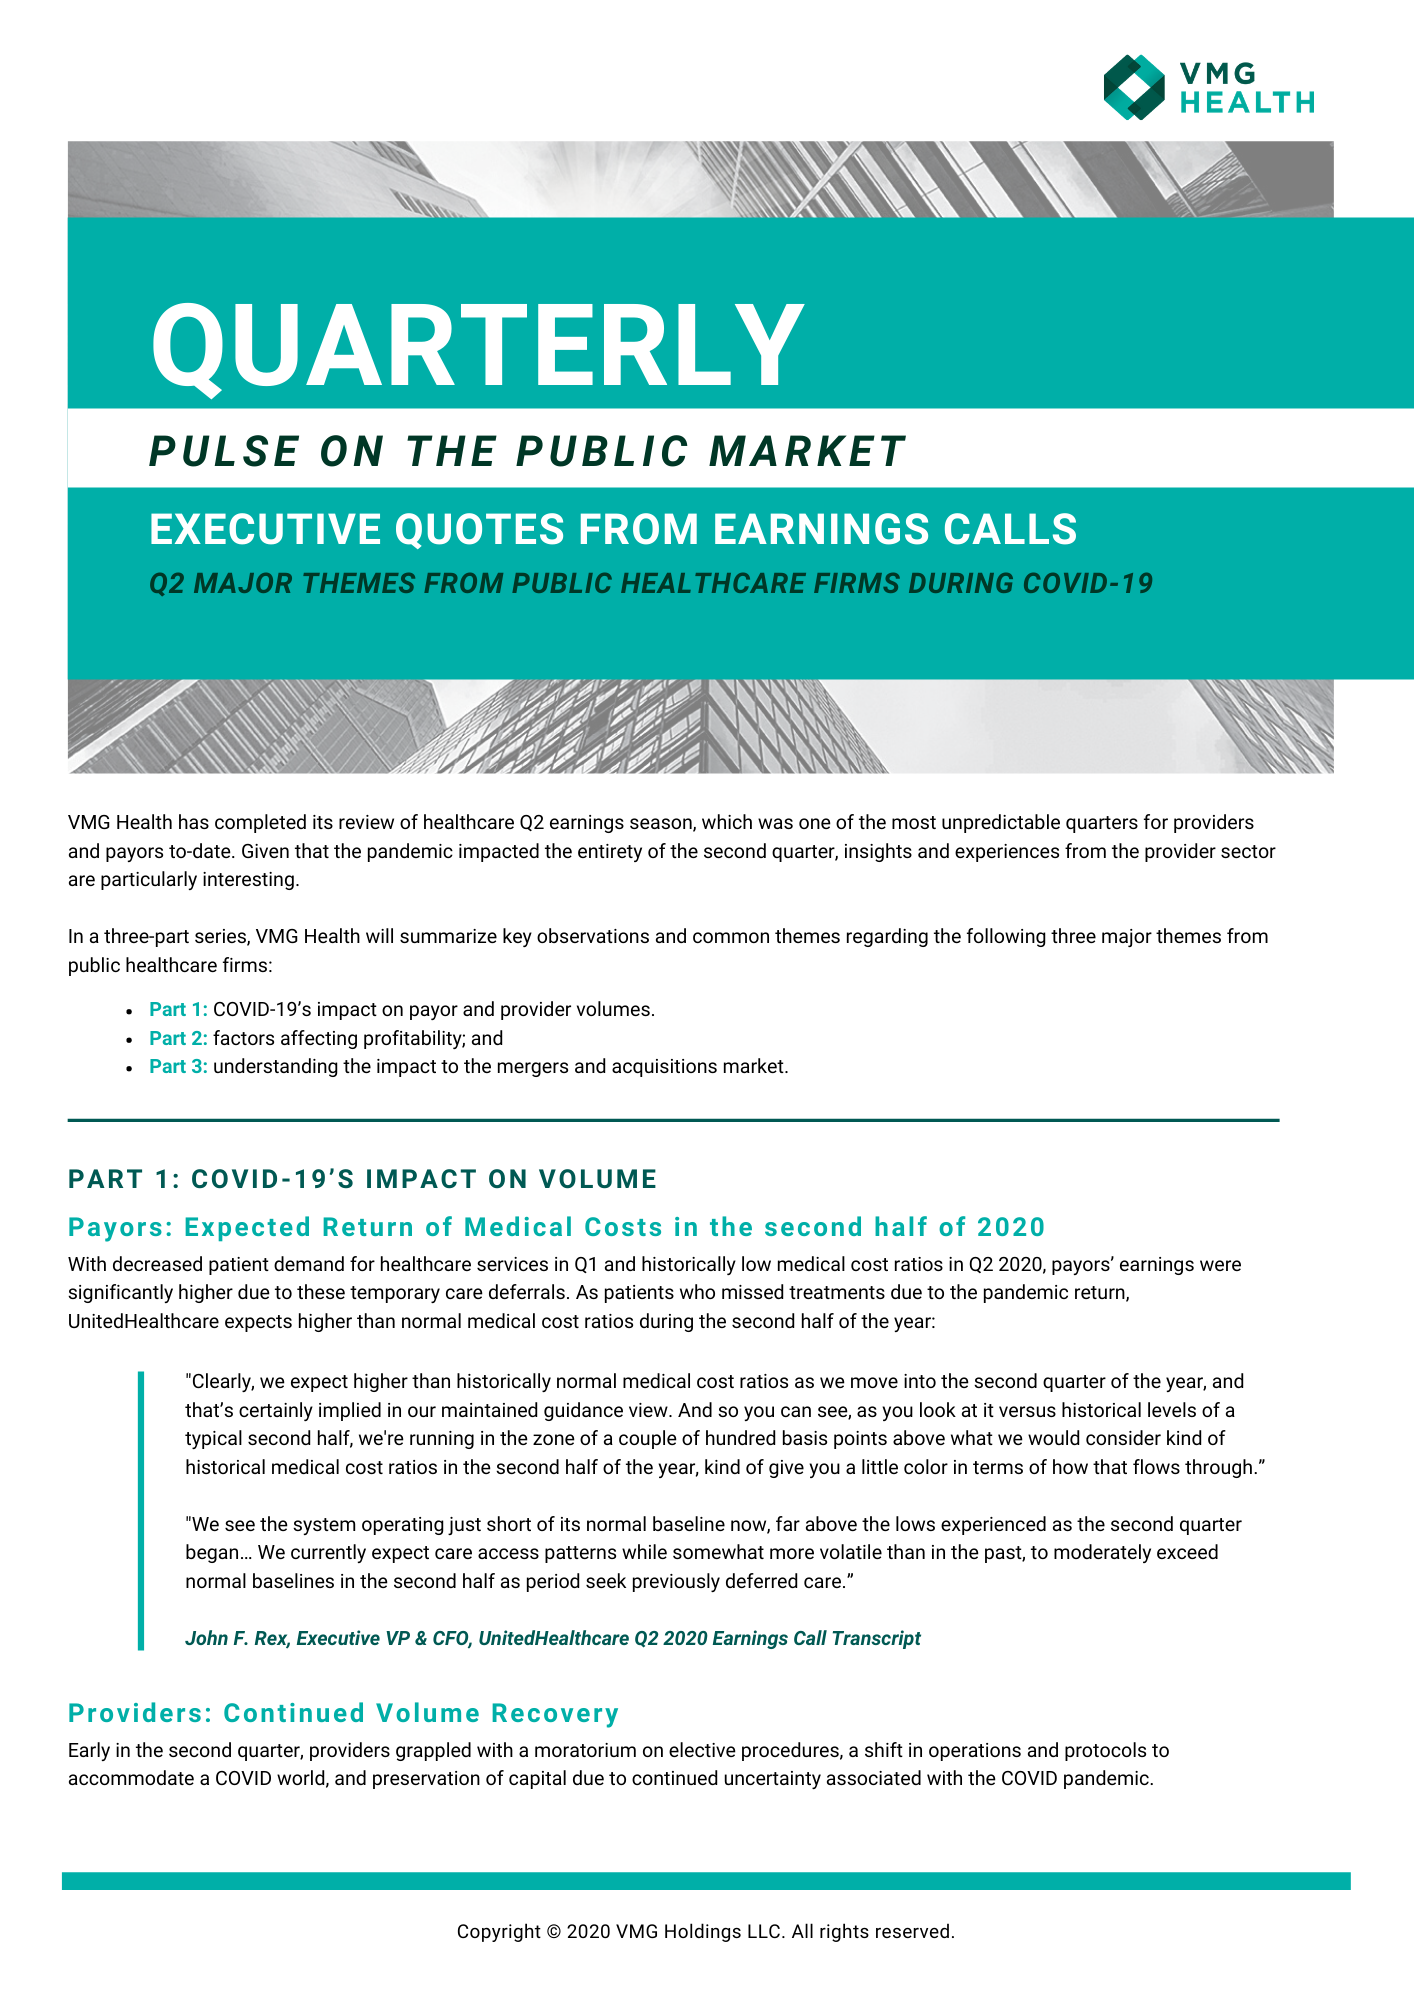 Q2 EXECUTIVE QUOTES FROM EARNINGS CALLS: 3 MAJOR THEMES FROM PUBLIC HEALTHCARE FIRMS DURING COVID-19